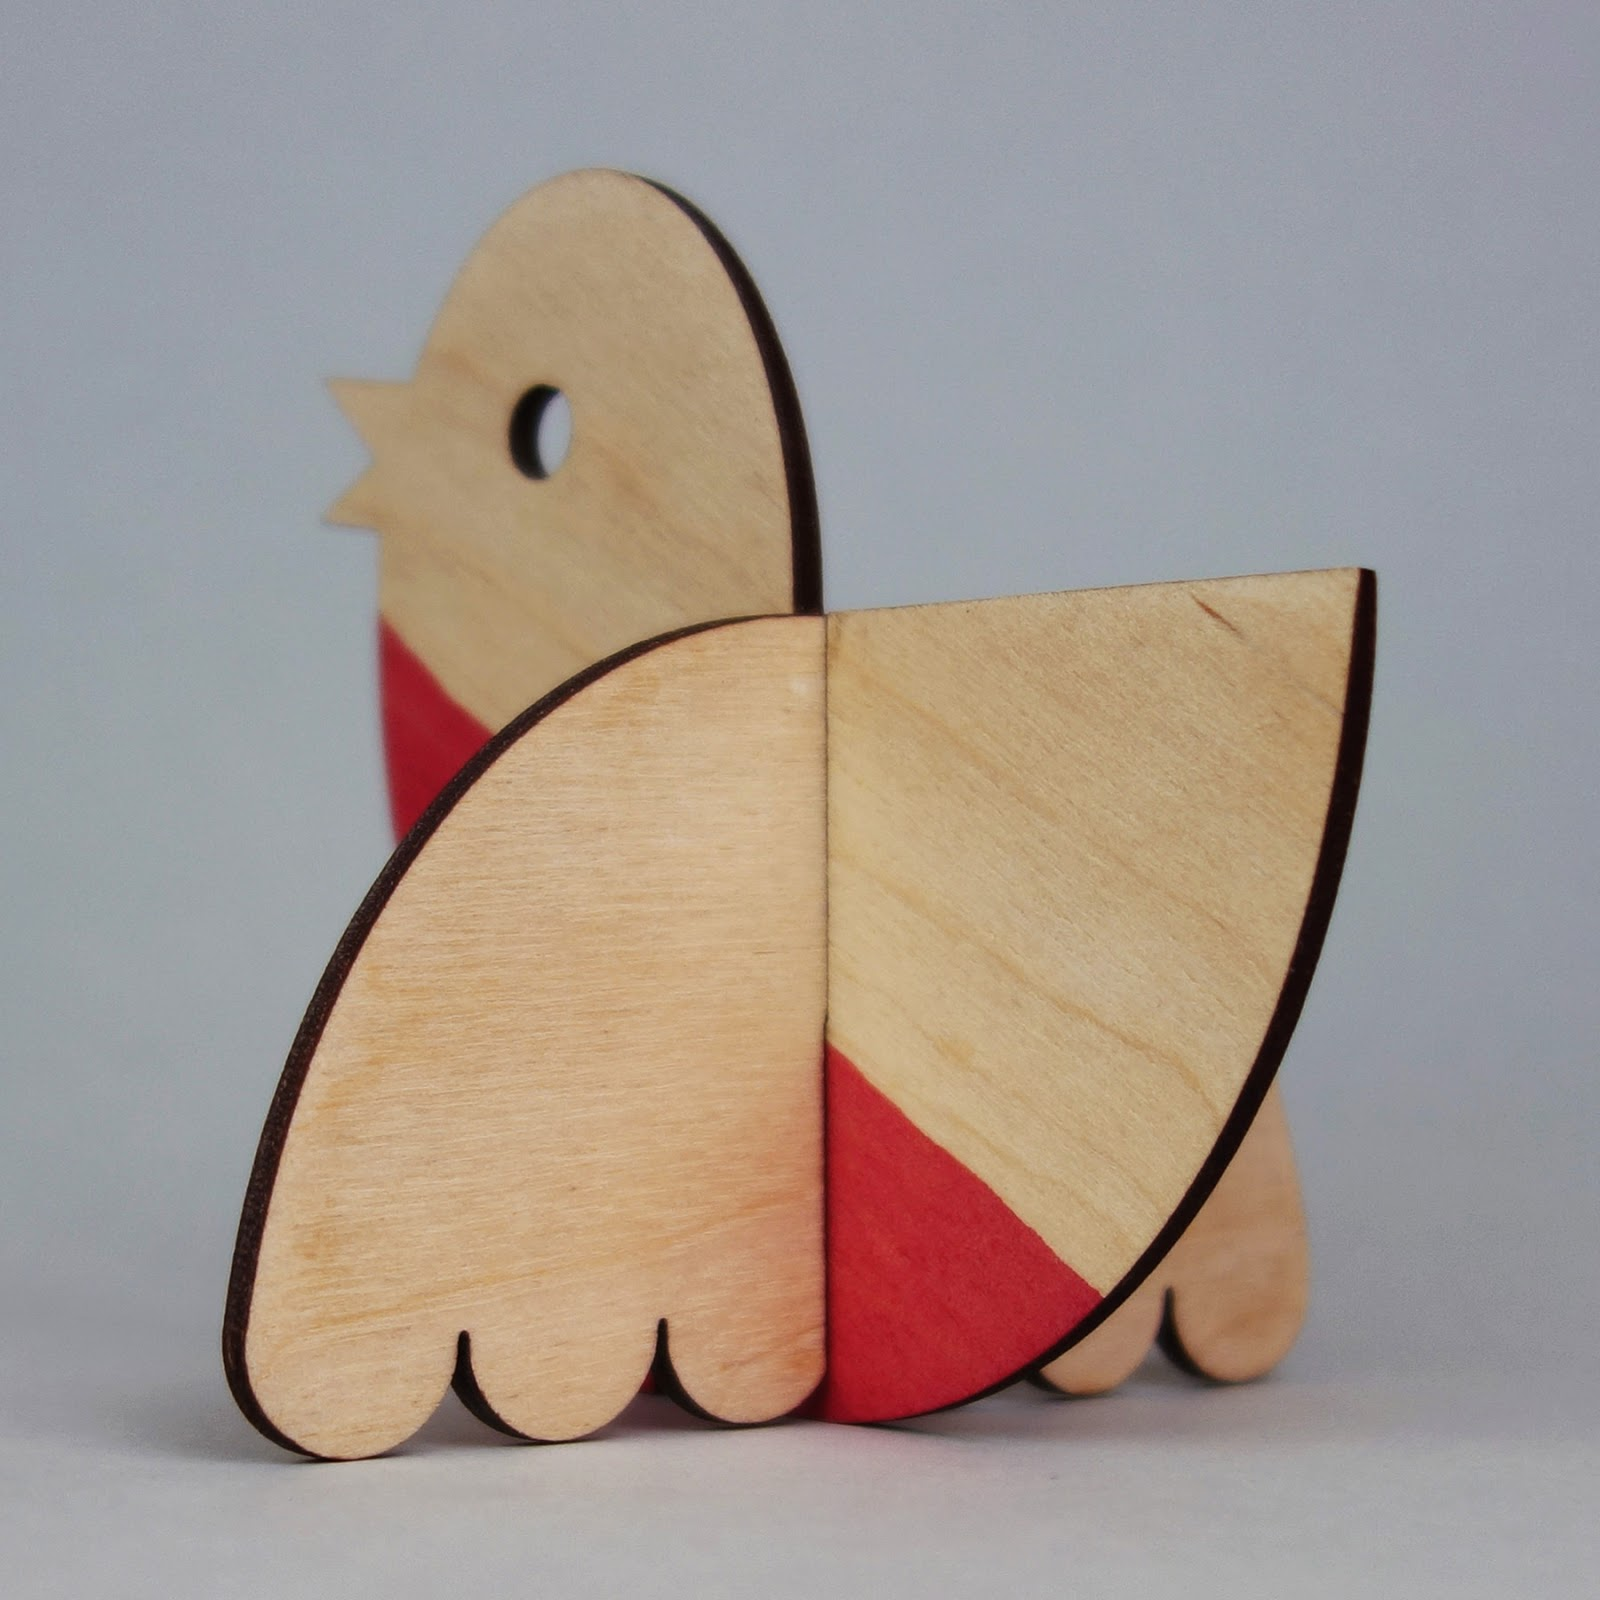 Plywood Christmas robin maquette 2014, 3/4 rear